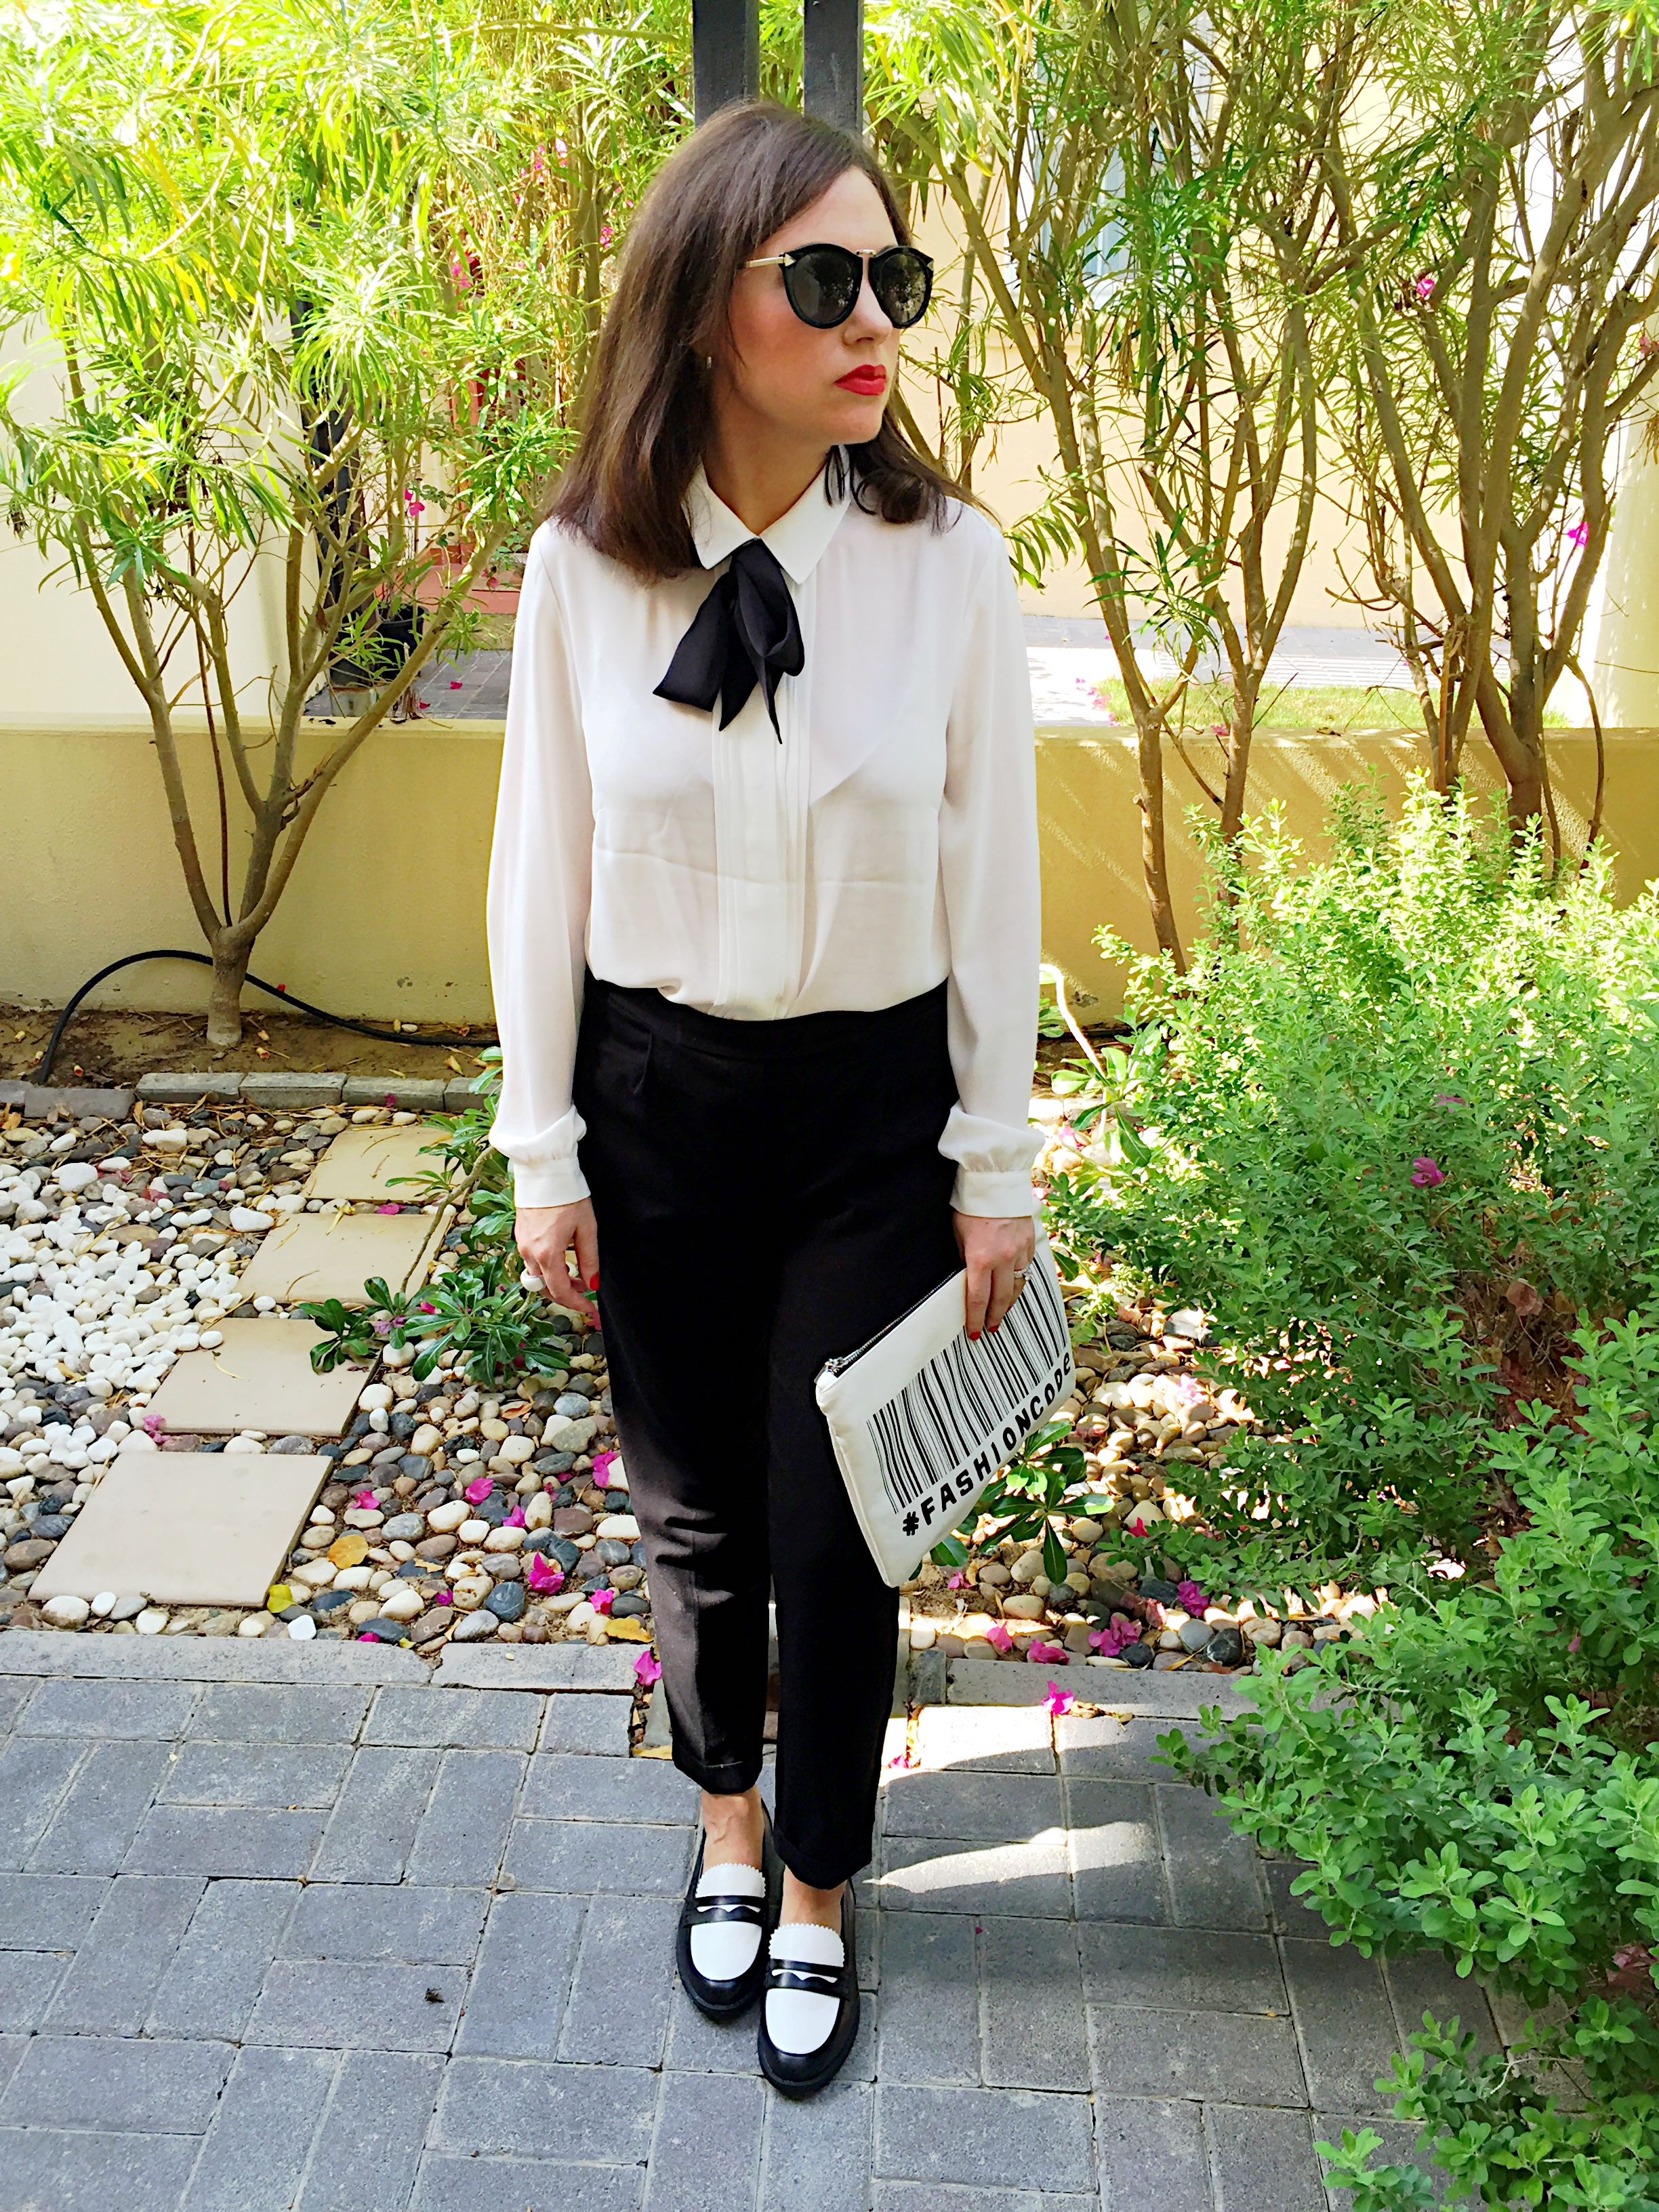 Gingham And Sparkle One Way To Wear The Very Versatile Bow Blouse